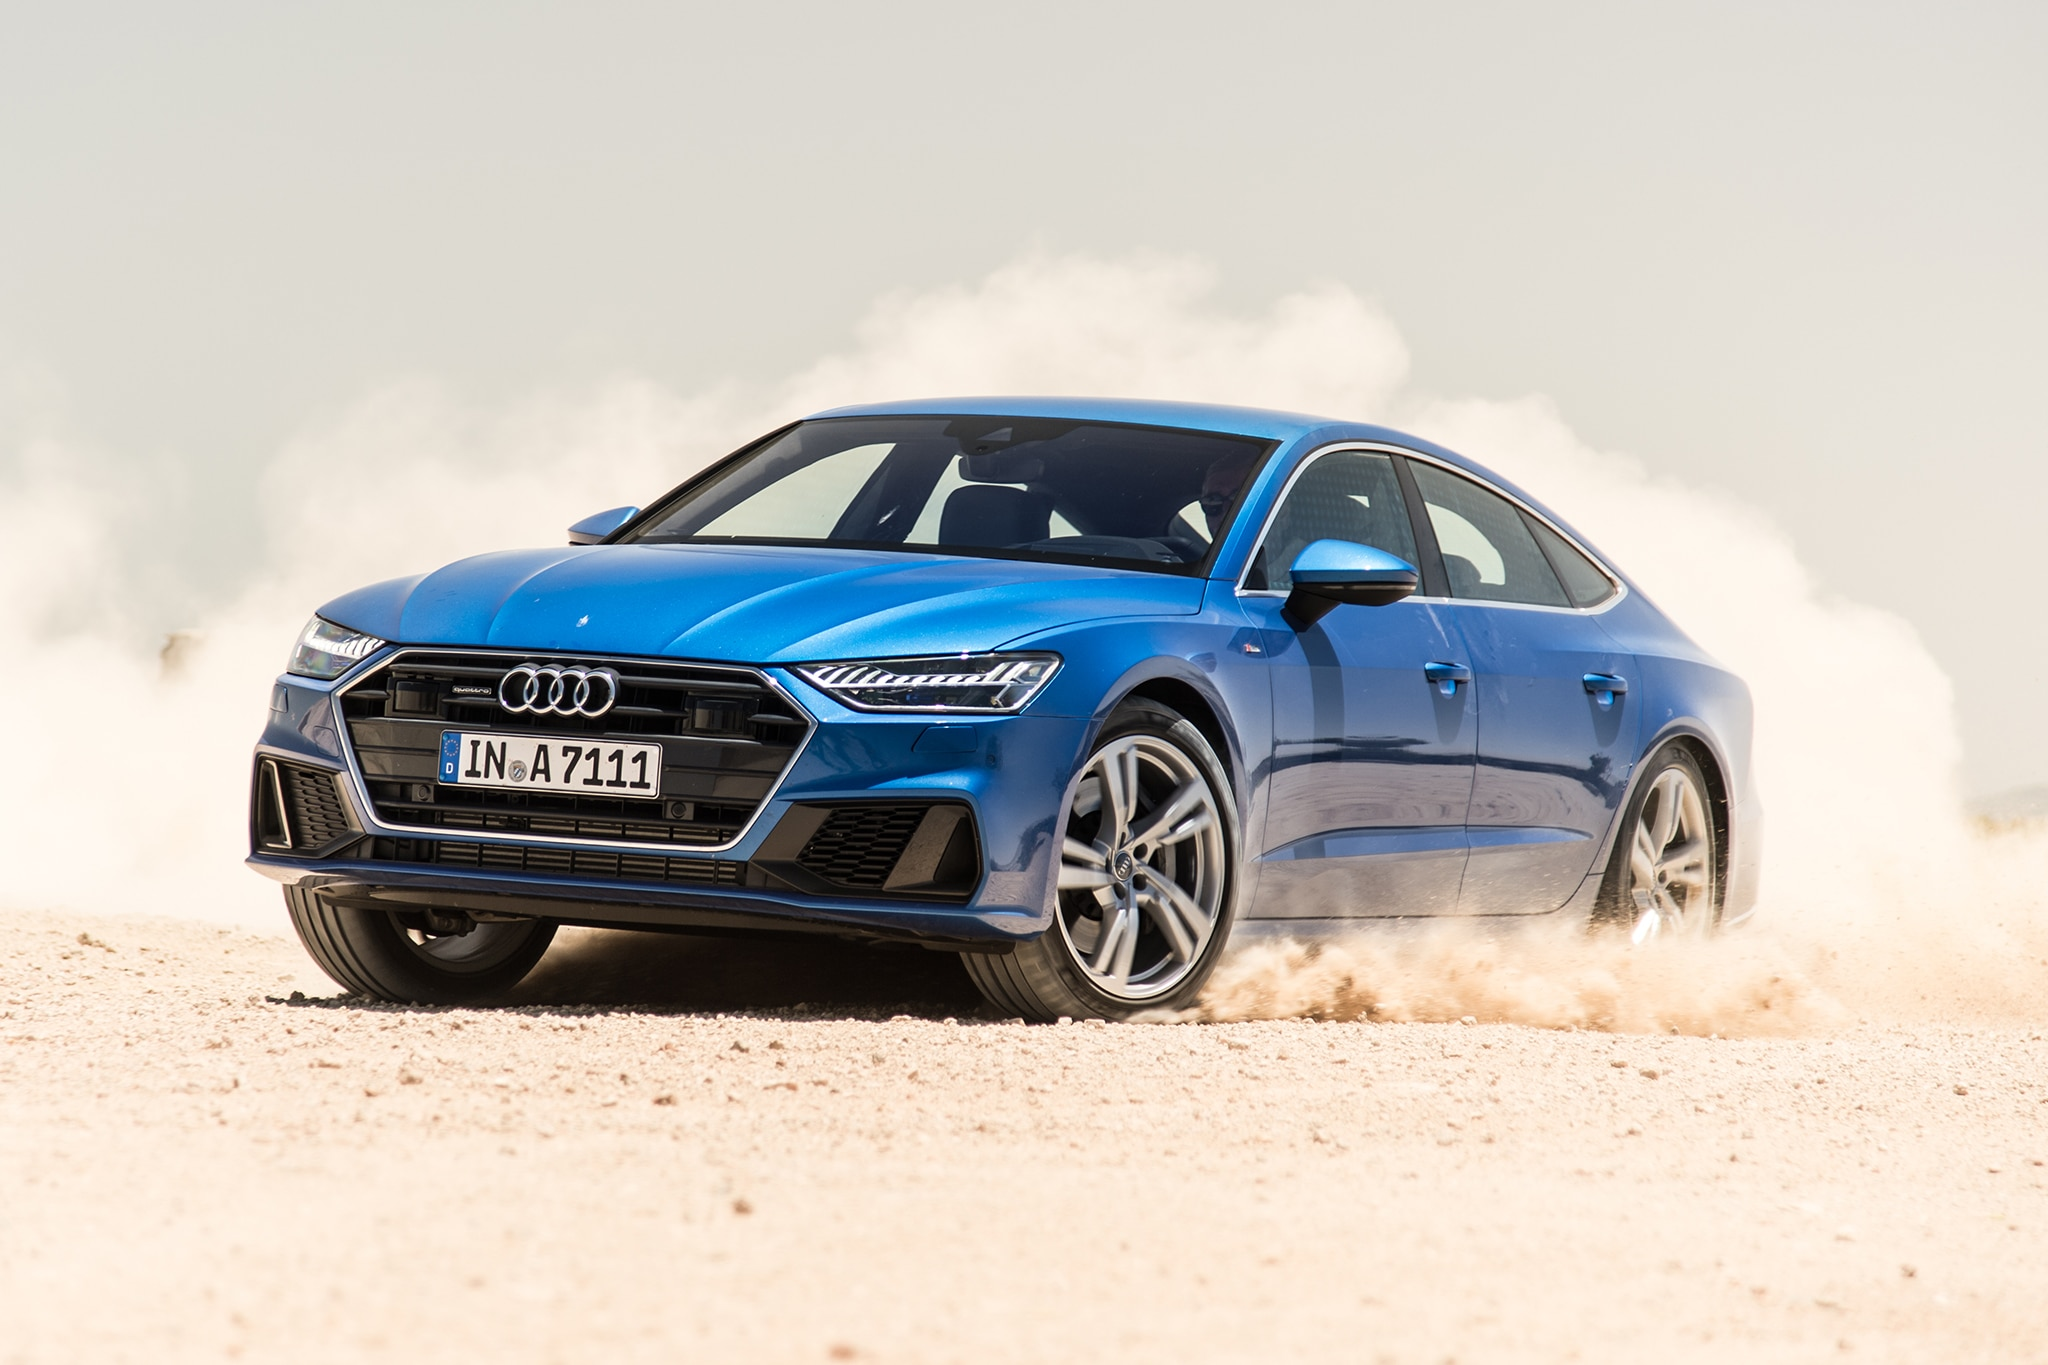 The 2019 Audi A7 Sportback Goes To Lüderitz